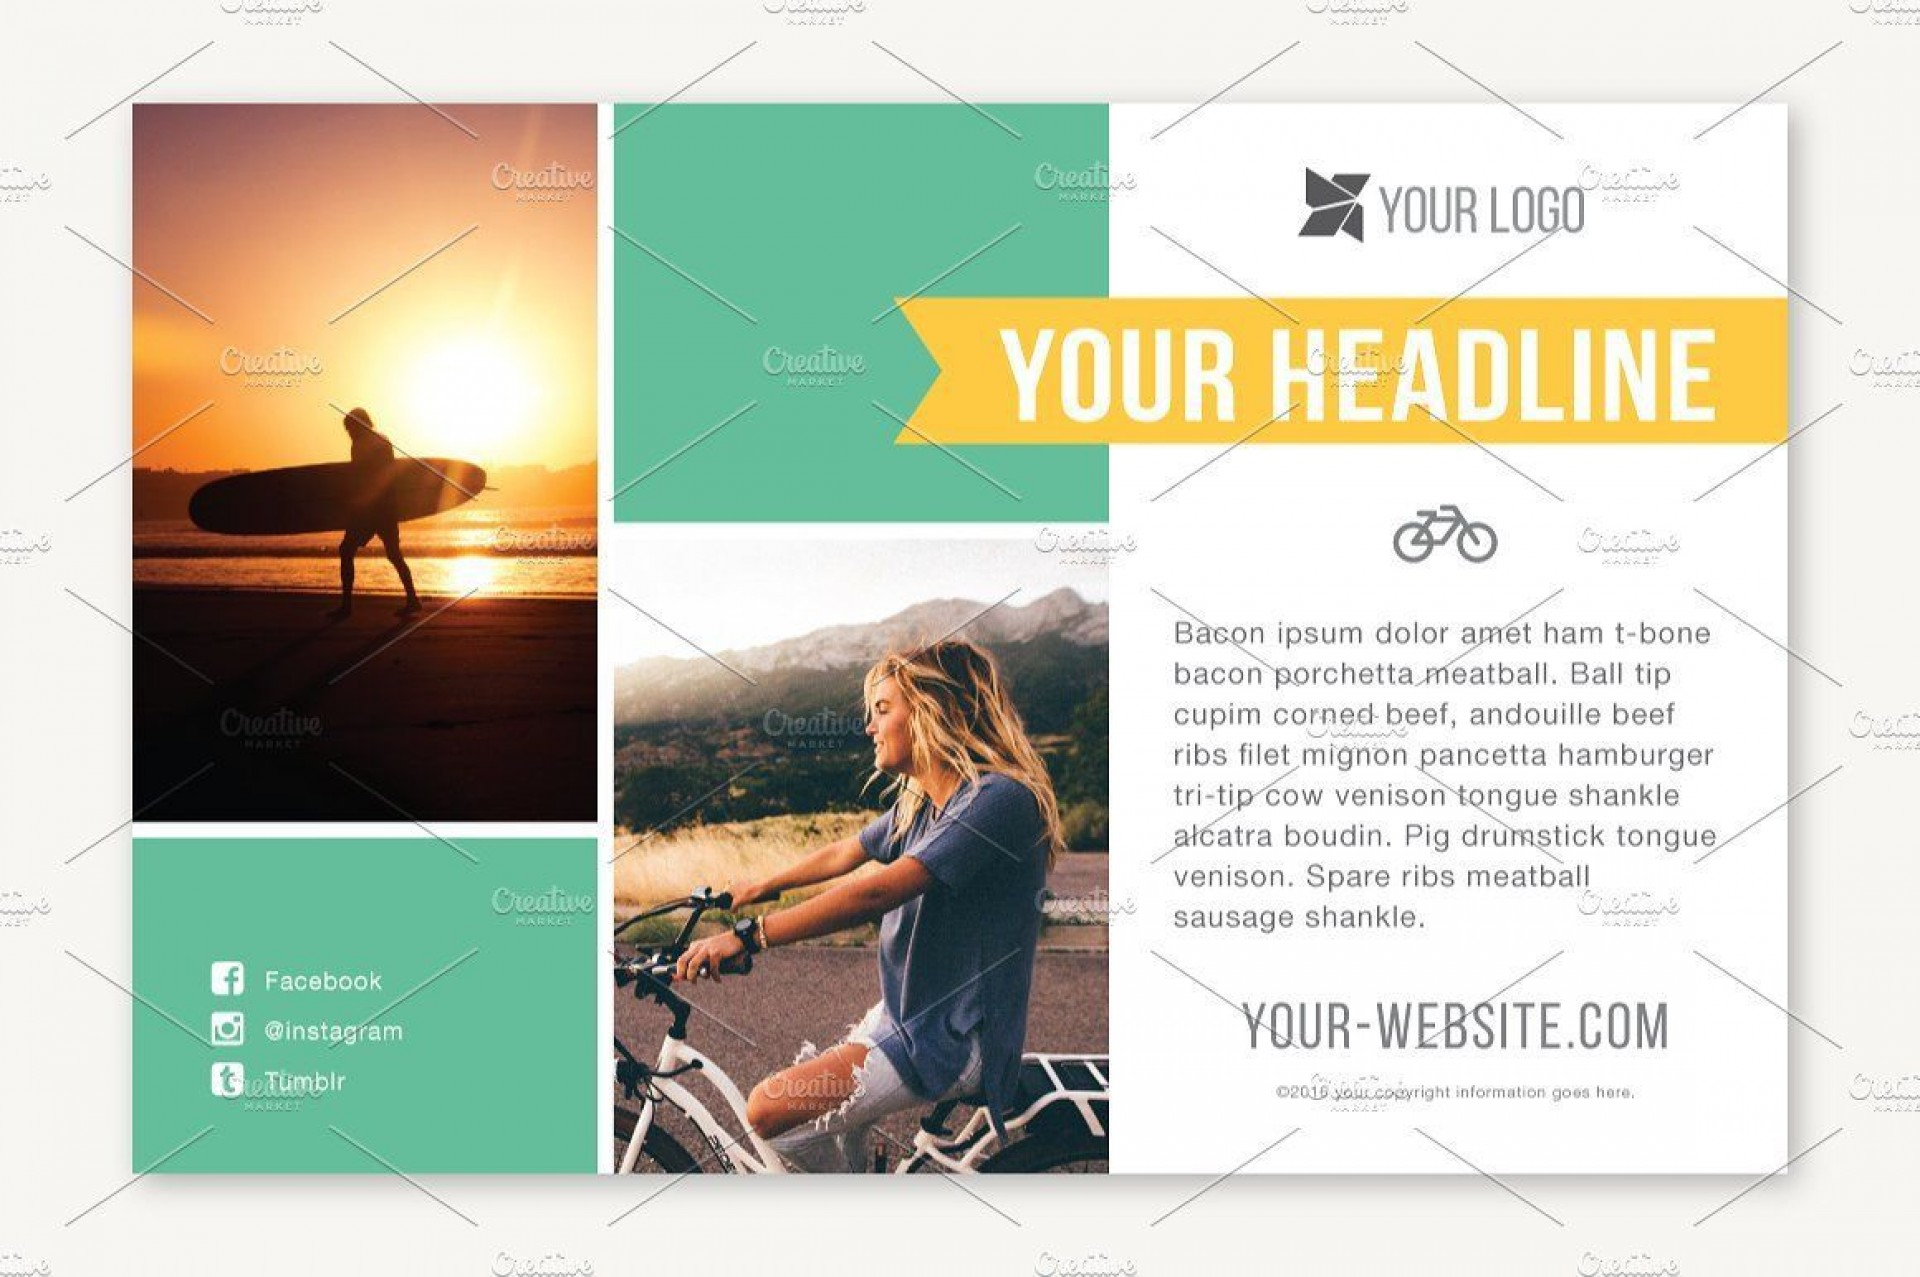 005 Magnificent Half Page Flyer Template Sample  Templates Google Doc Free Word Canva1920